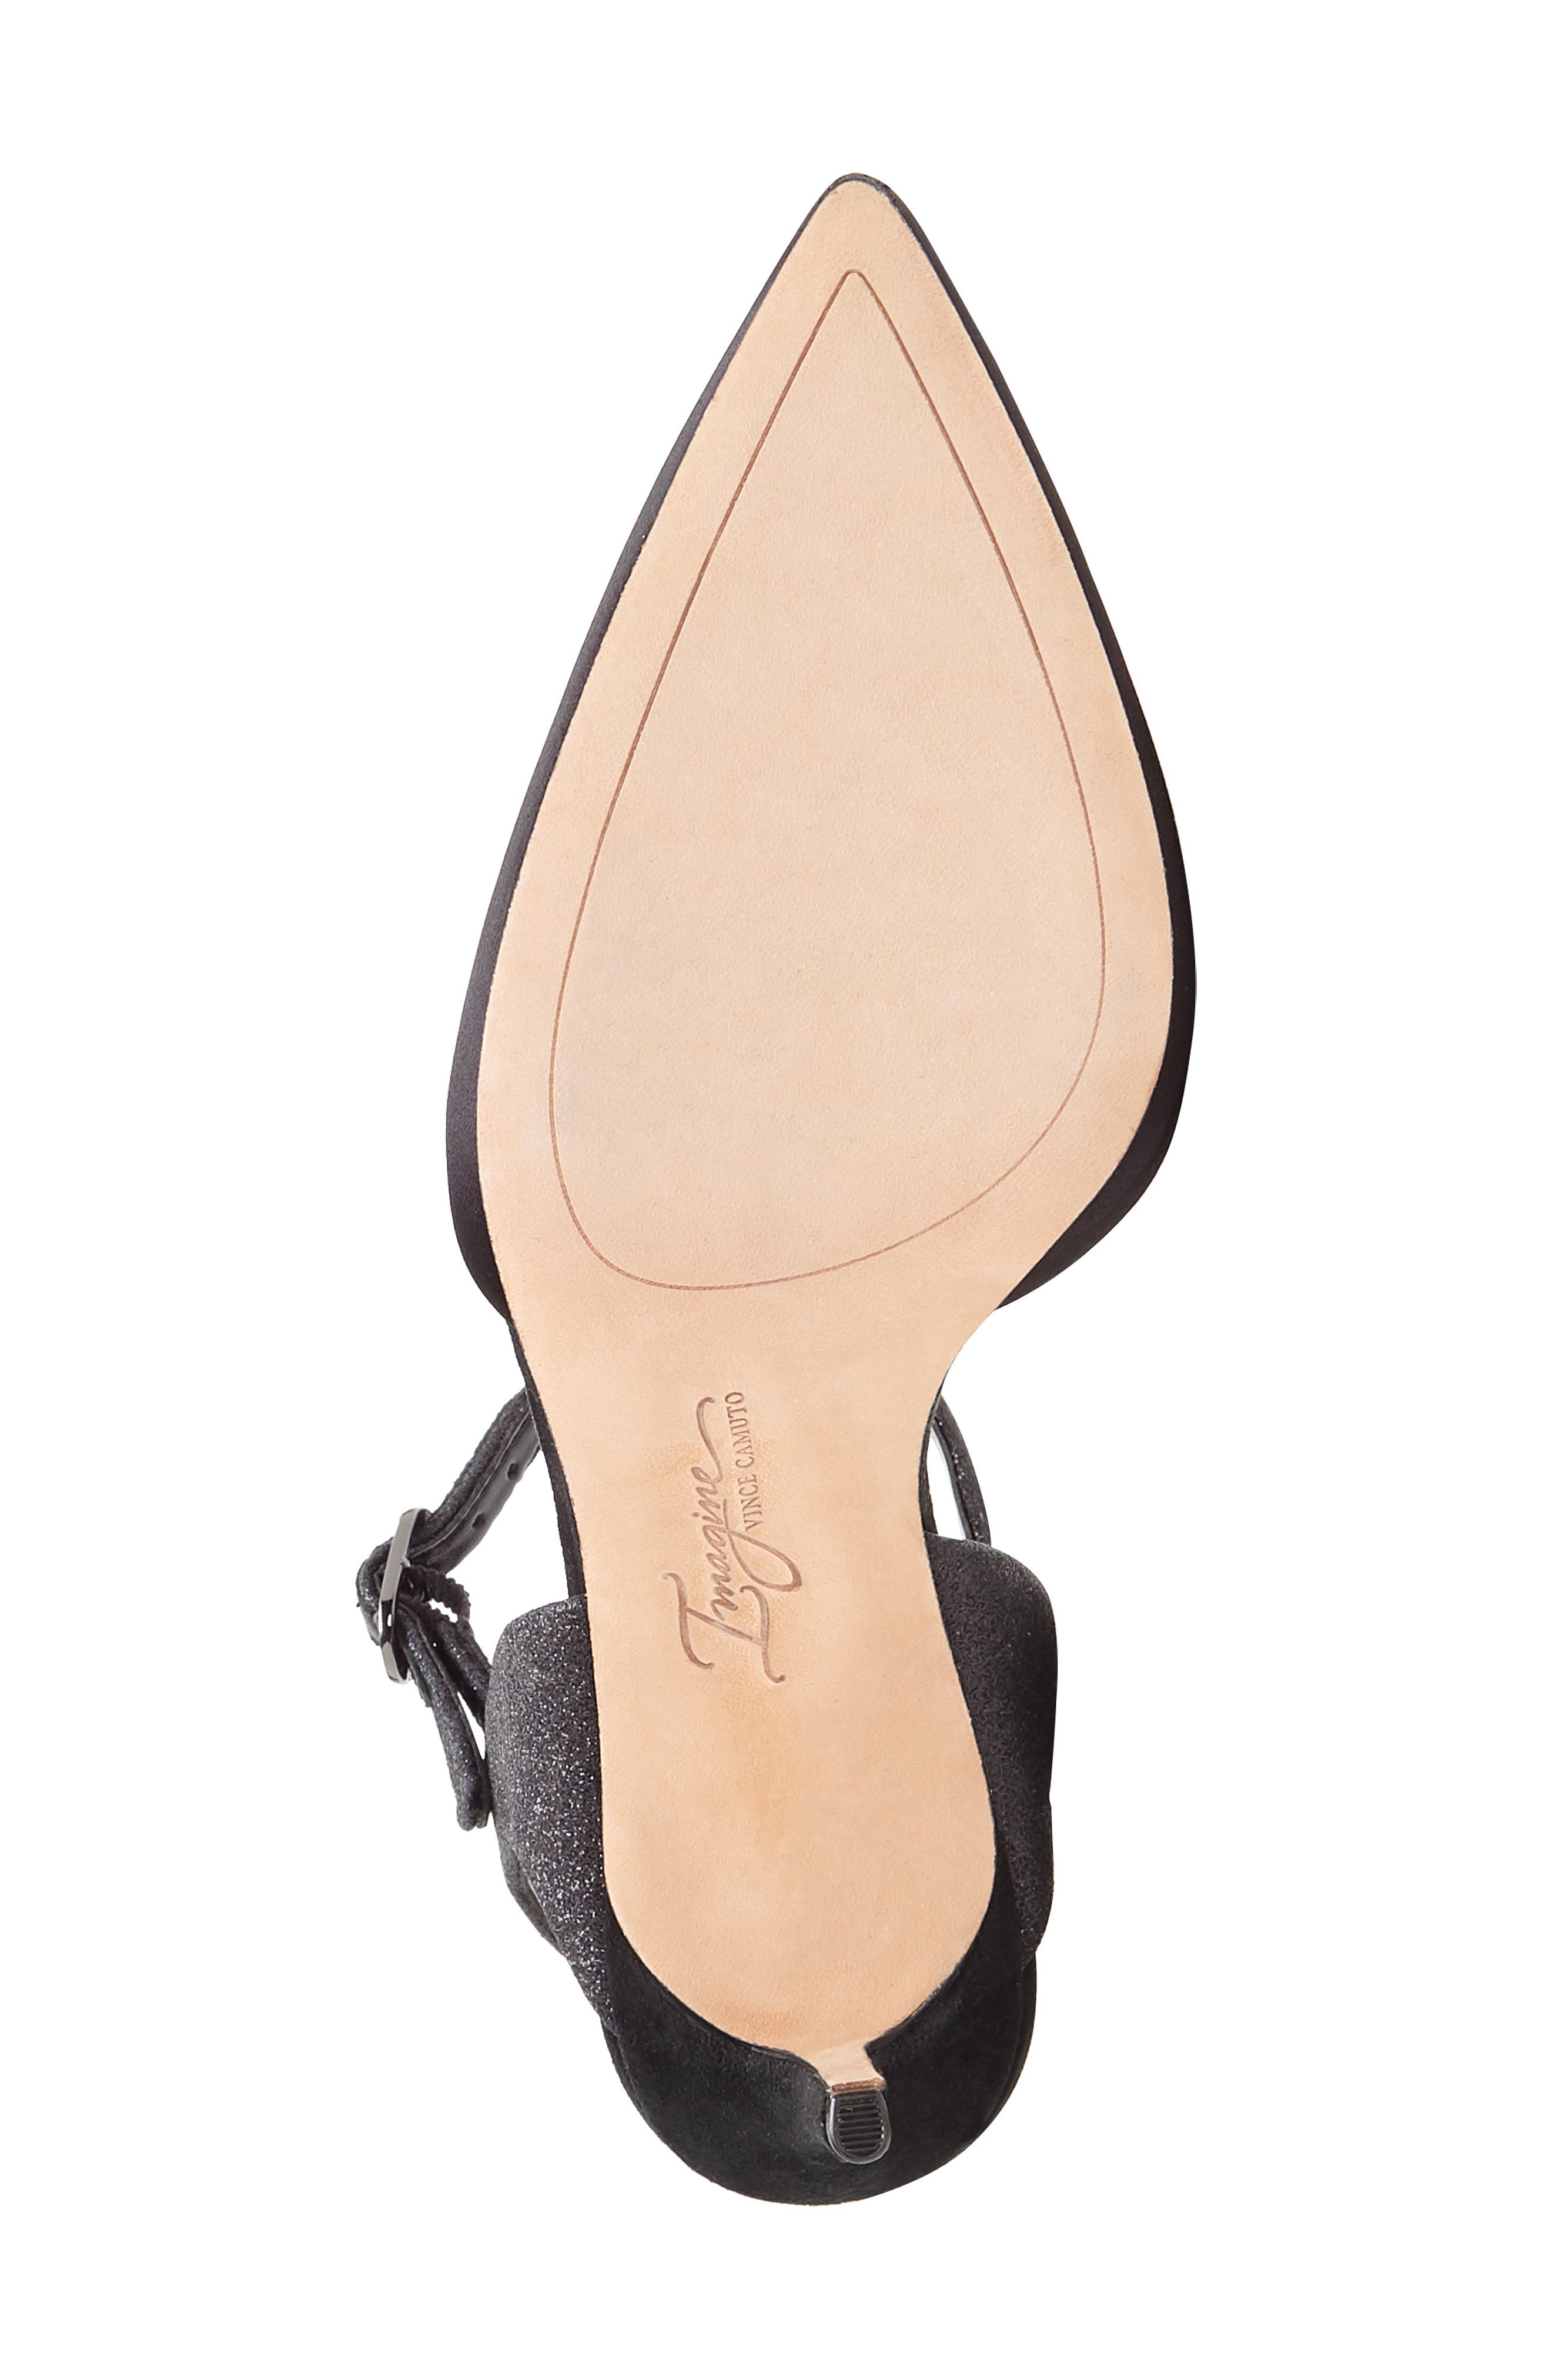 IMAGINE BY VINCE CAMUTO, Glora Pointy Toe Pump, Alternate thumbnail 6, color, BLACK SATIN